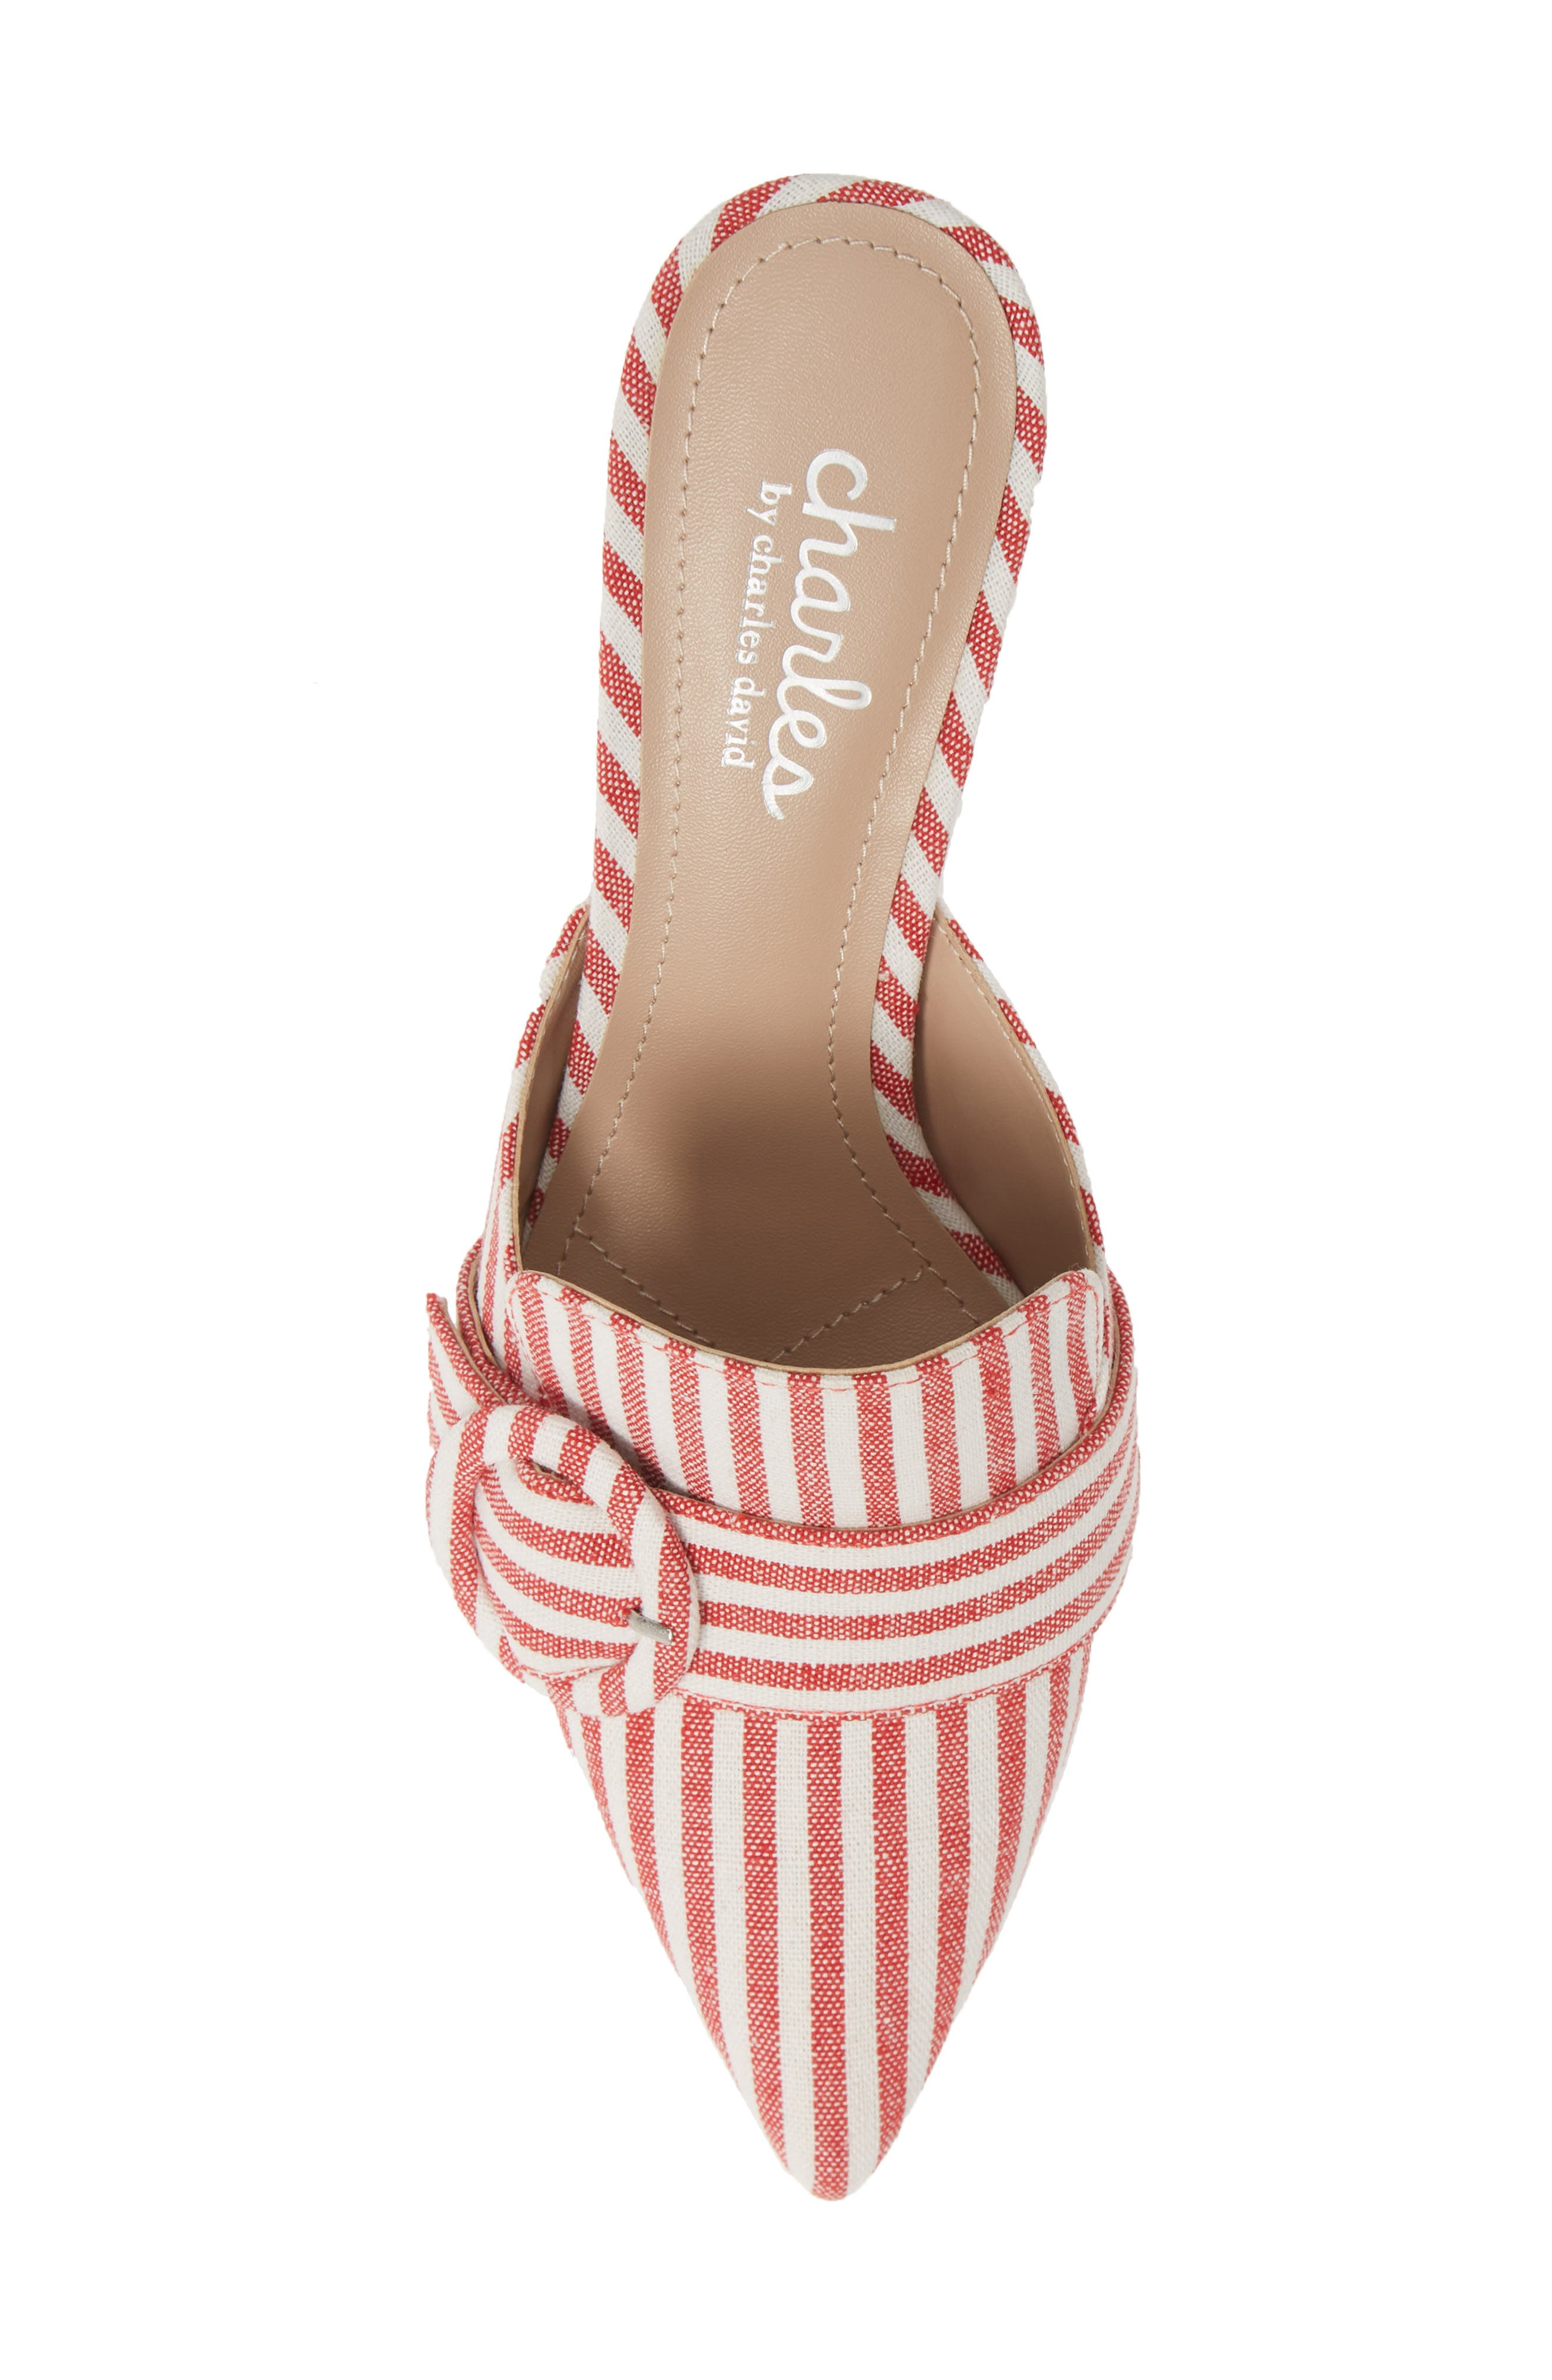 CHARLES BY CHARLES DAVID, Acapulco Mule, Alternate thumbnail 5, color, CANDY RED FABRIC